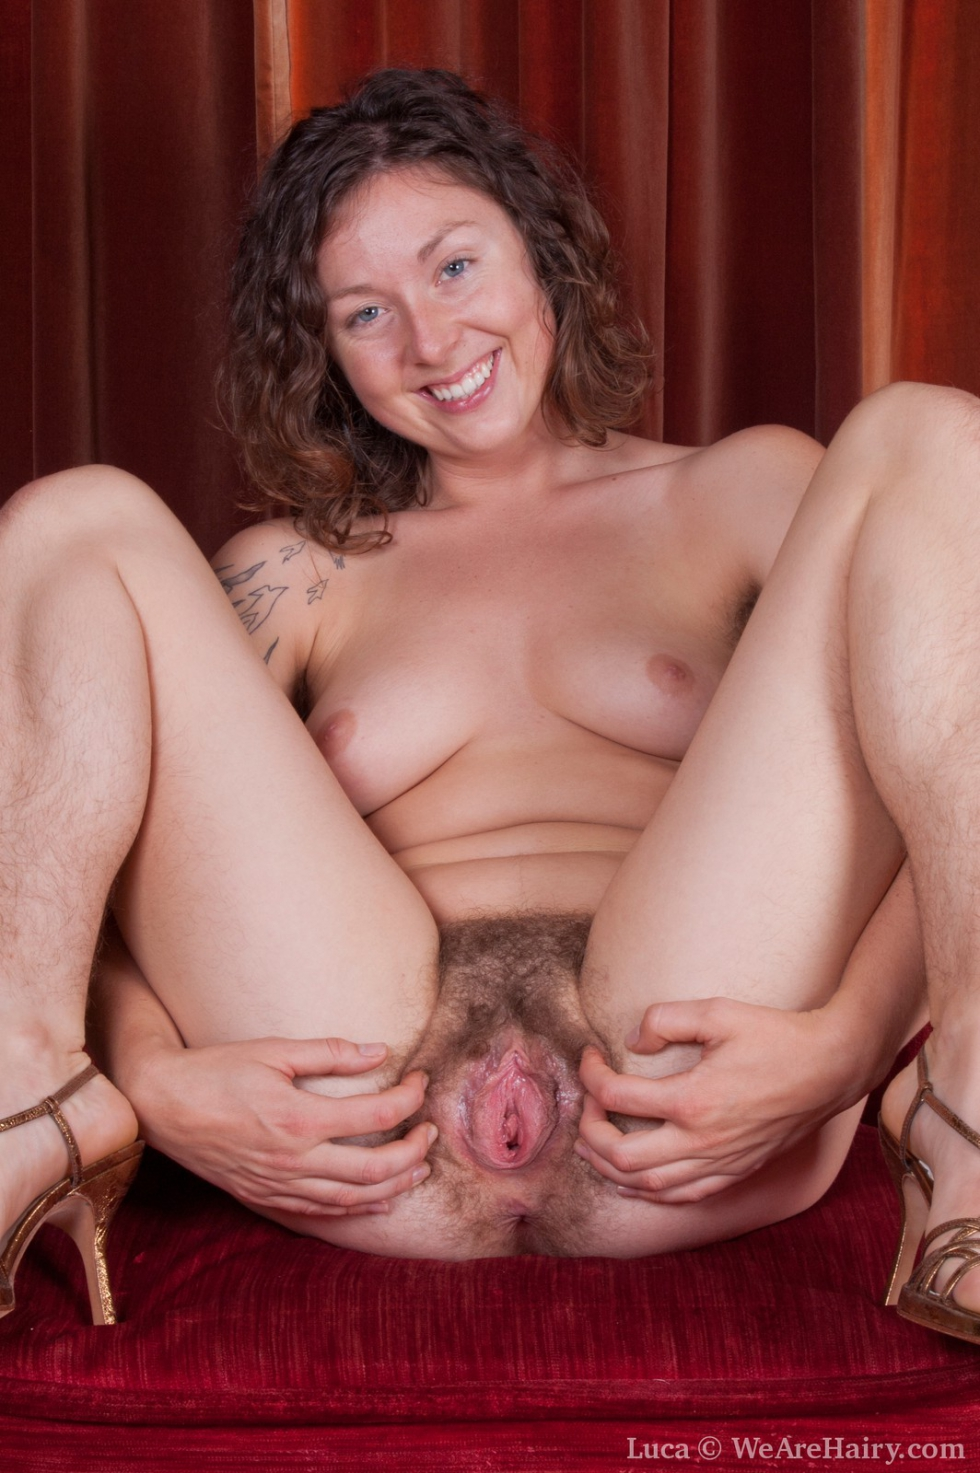 Hairy pussy sitting on chair